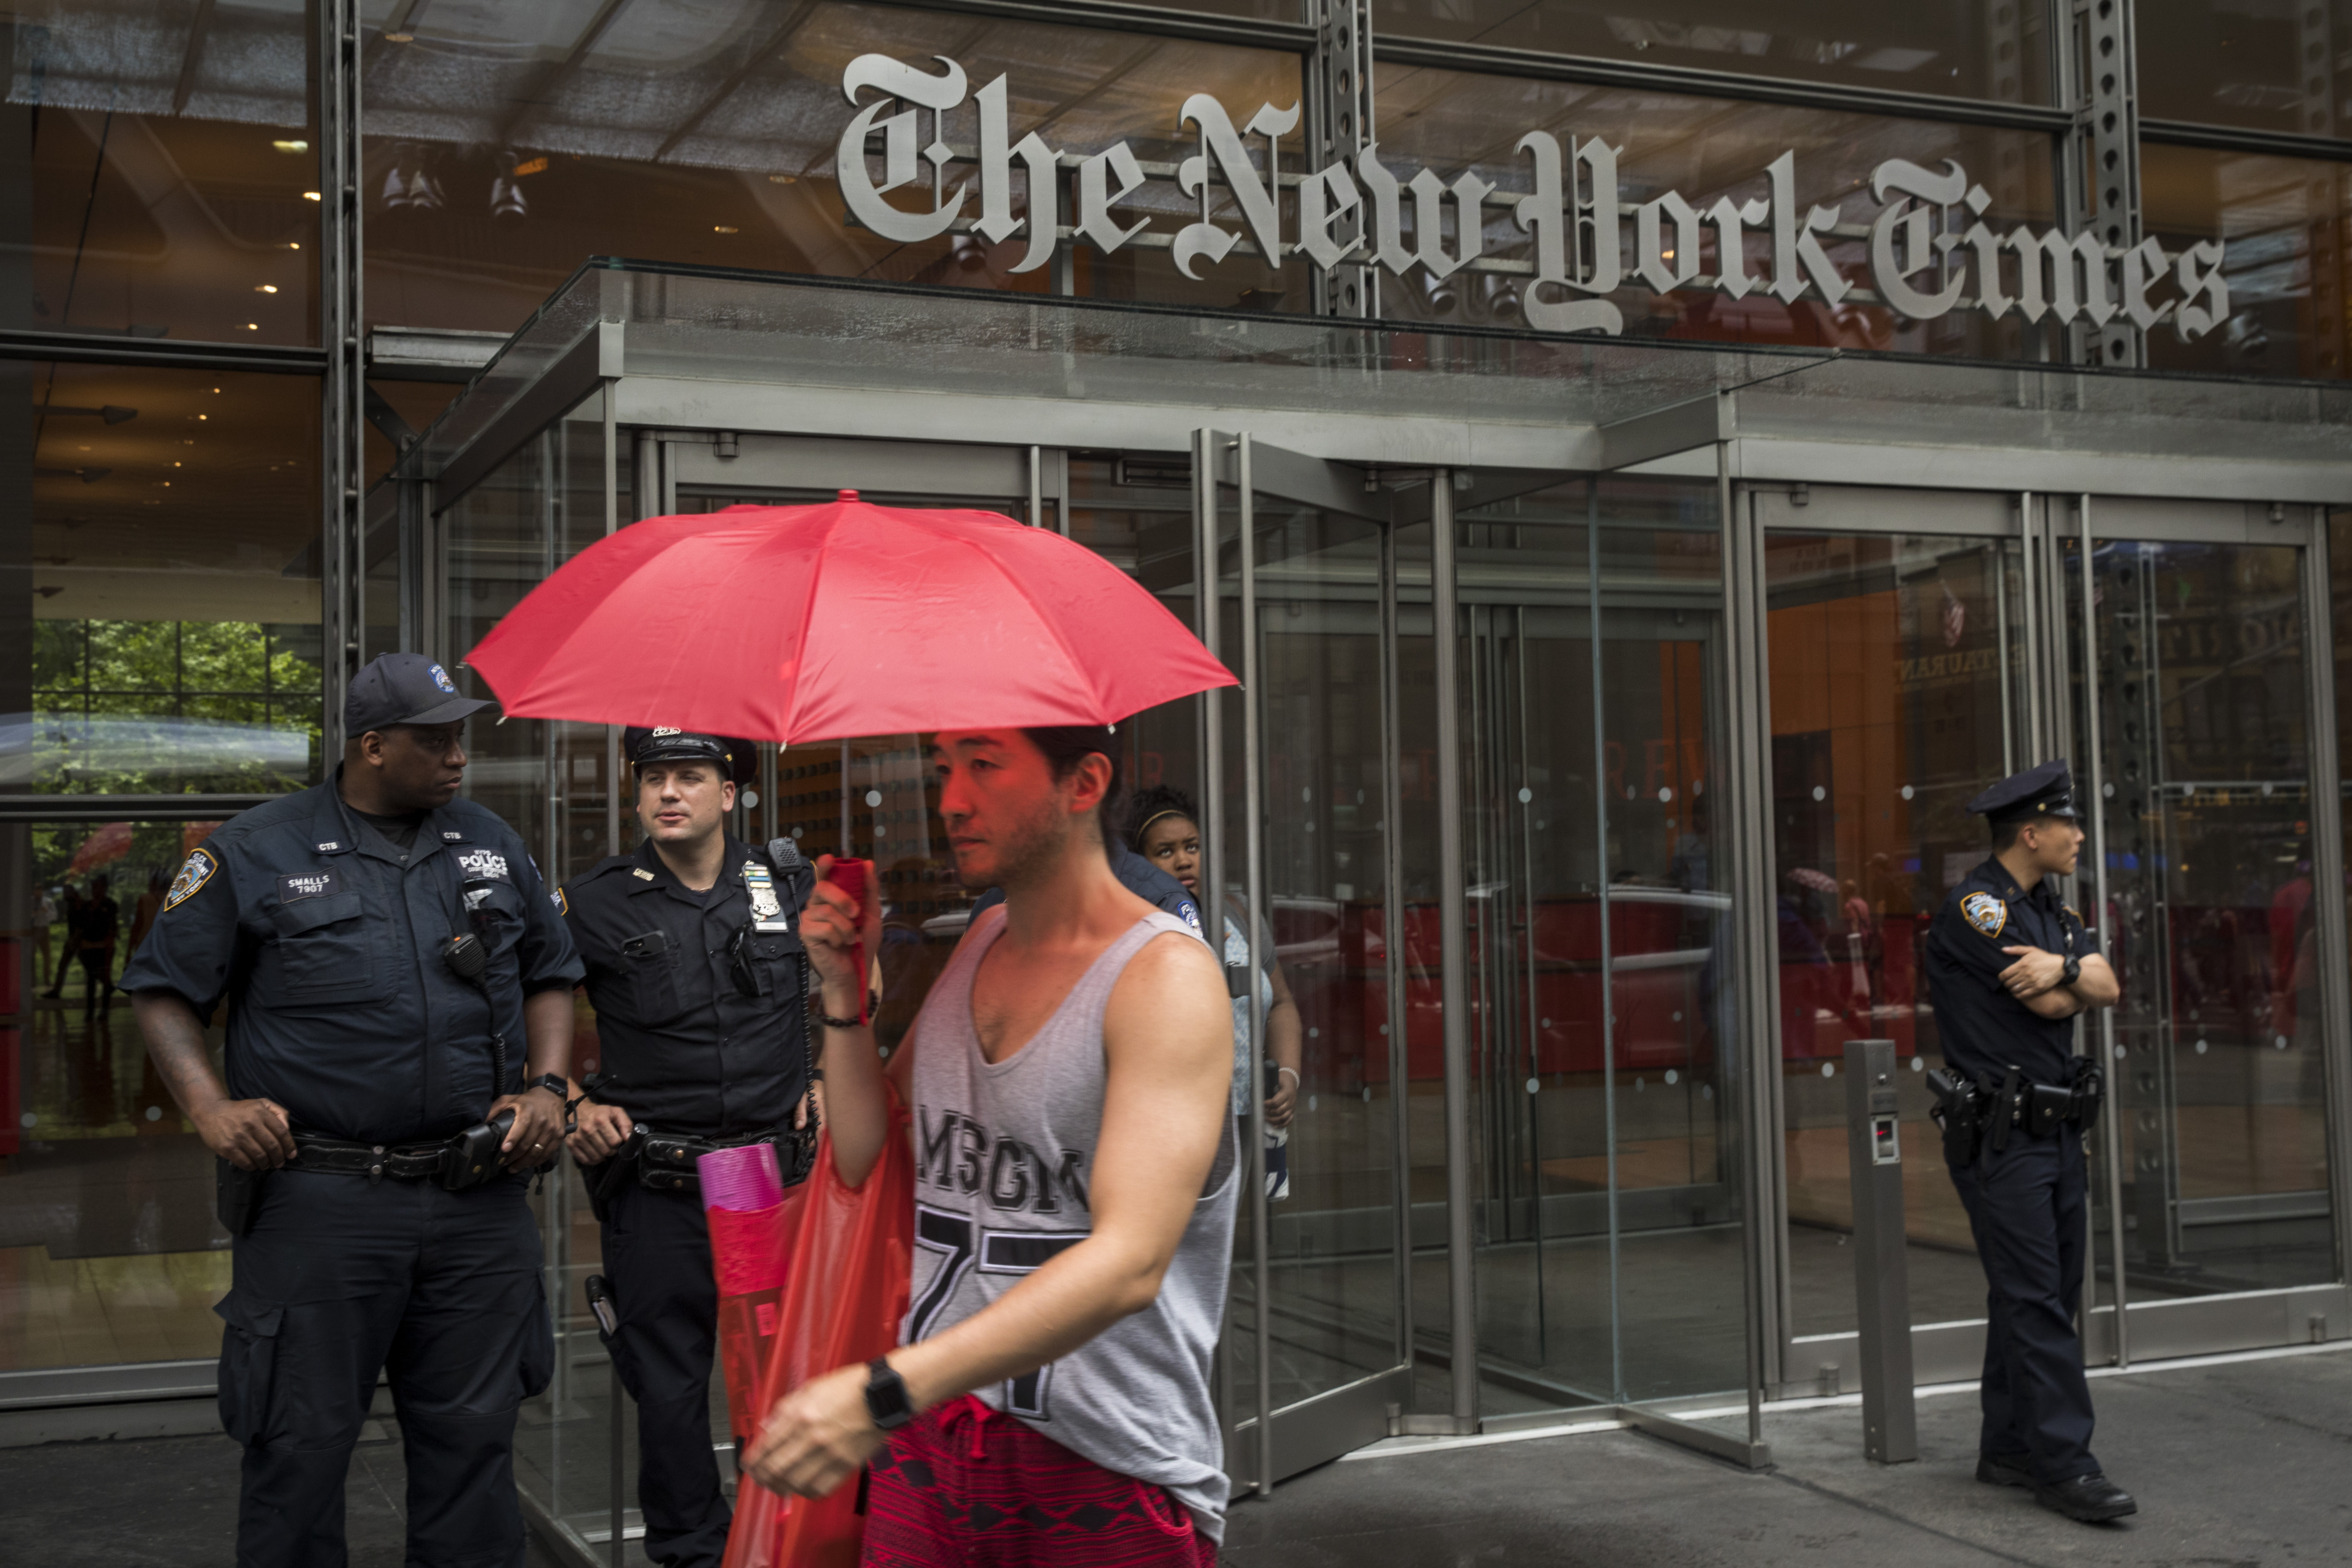 The New York Times building with policemen out front